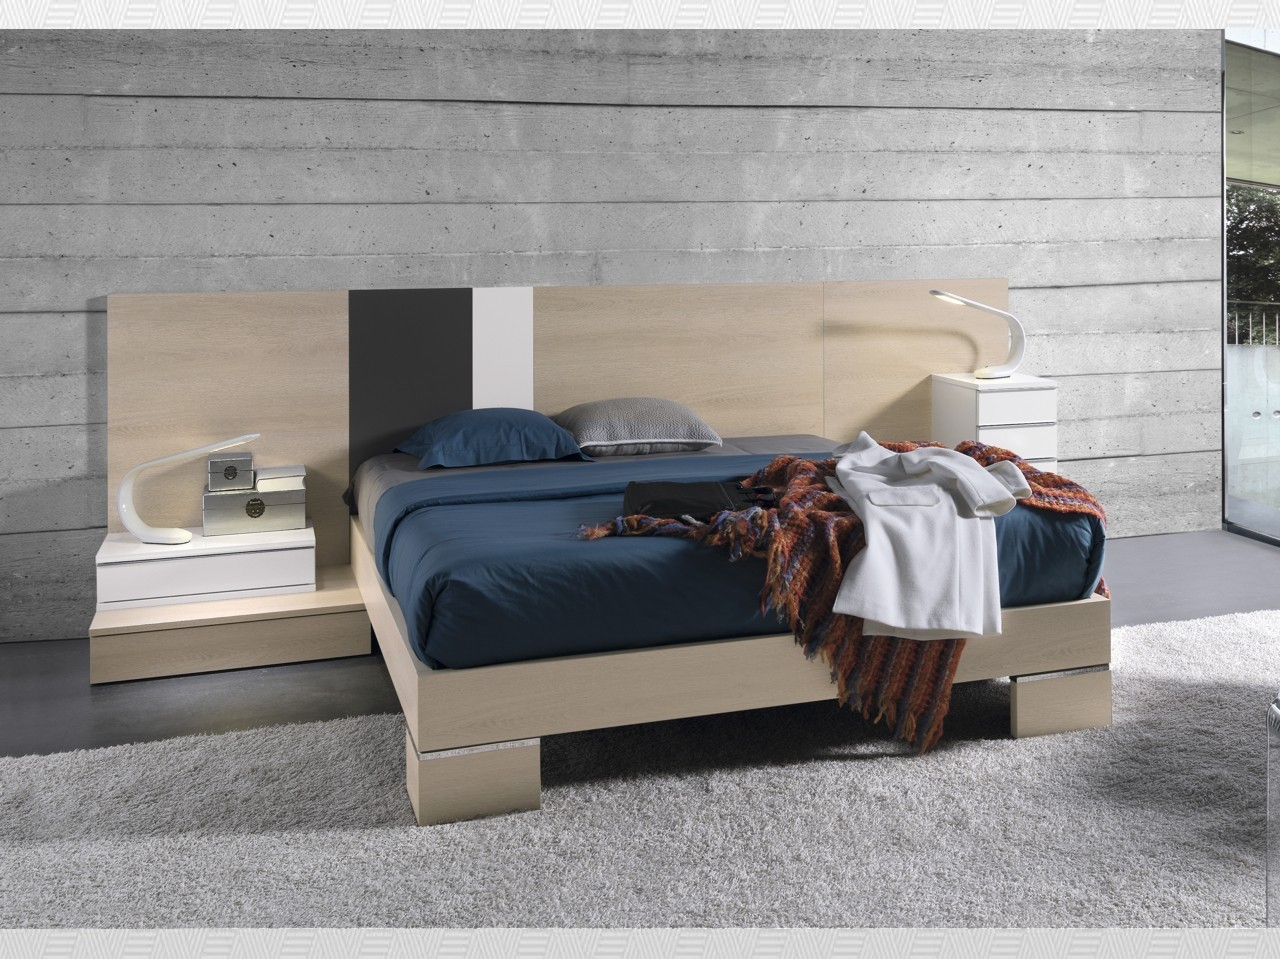 Dormitorio matrimonio roble grafito blanco lacado del for Muebles chaves